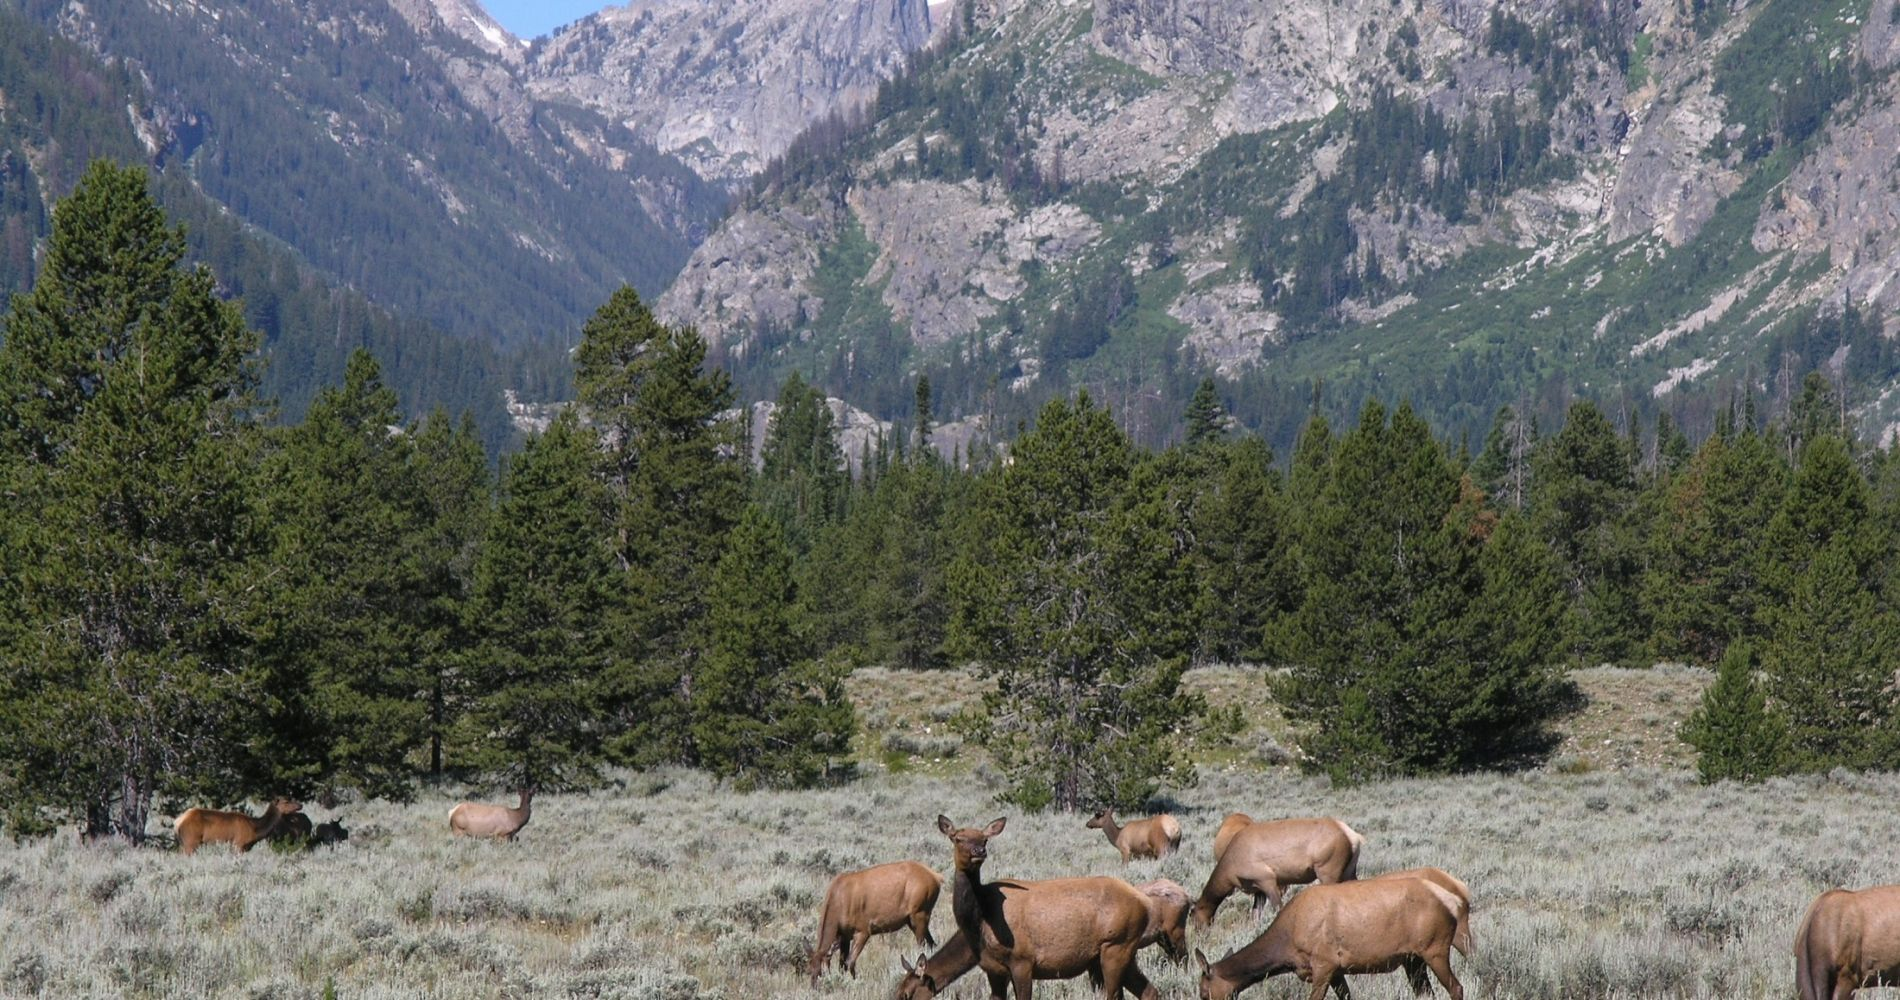 Morning Wildlife Safari Adventure in Wyoming